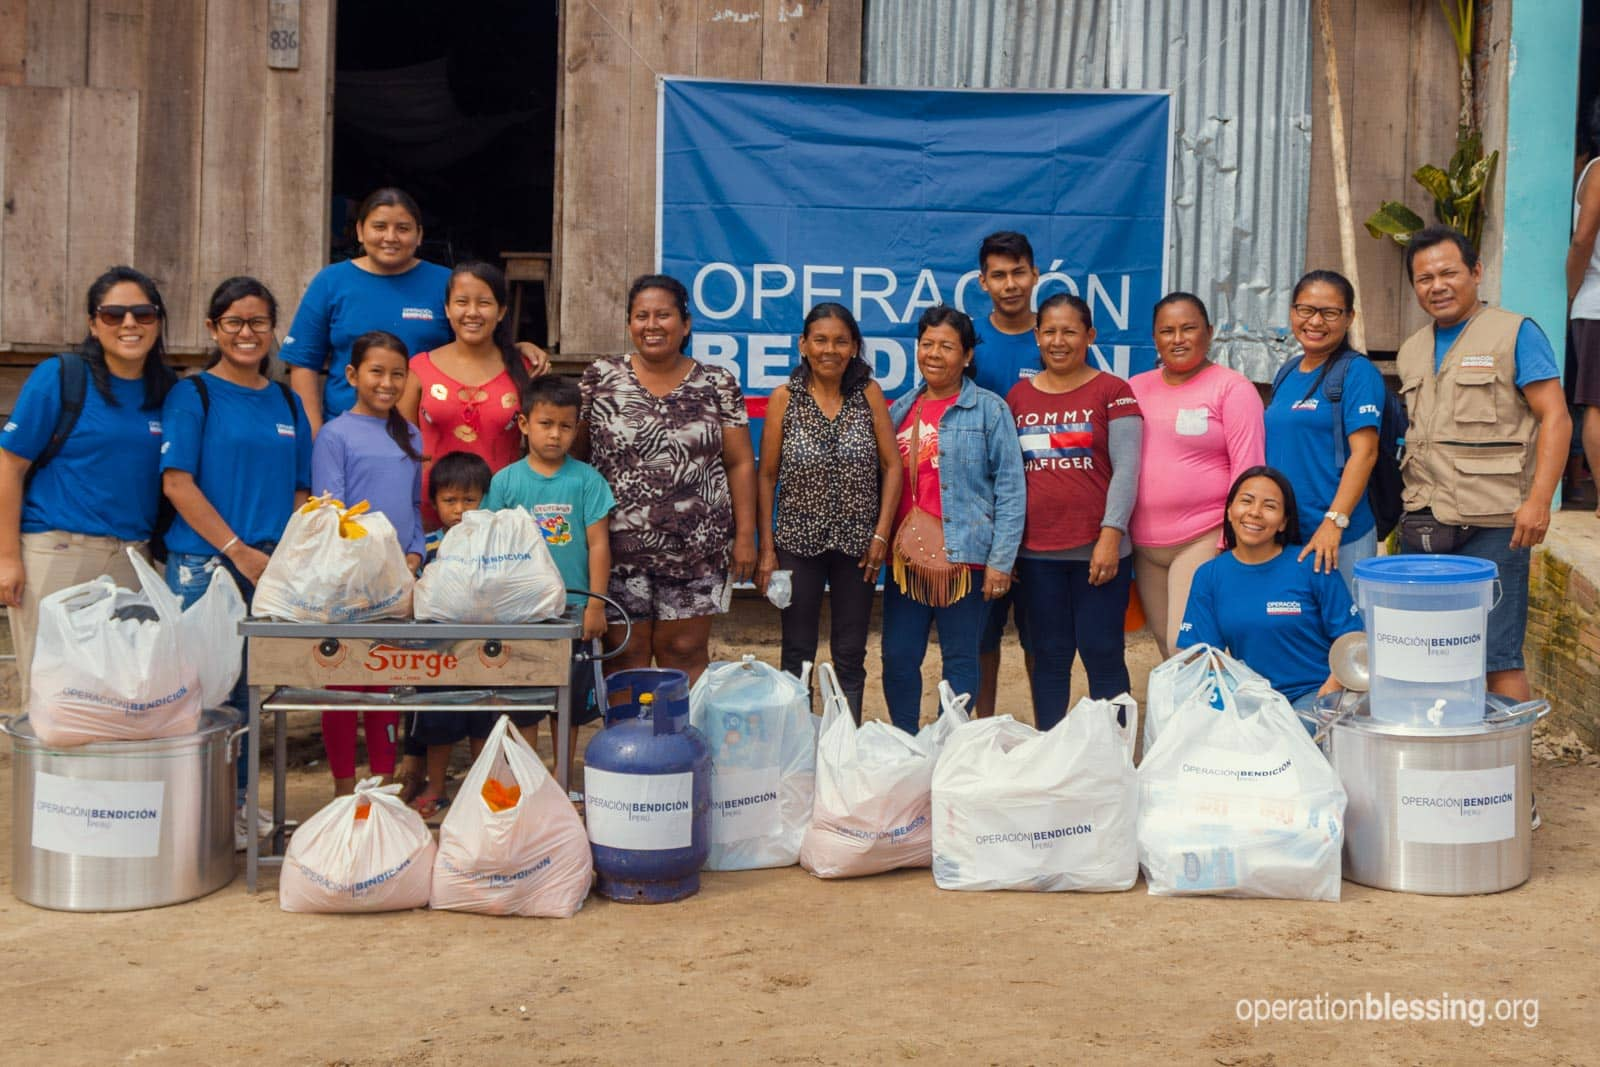 Operation Blessing delivers disaster relief supplies thanks to support from friends like you.